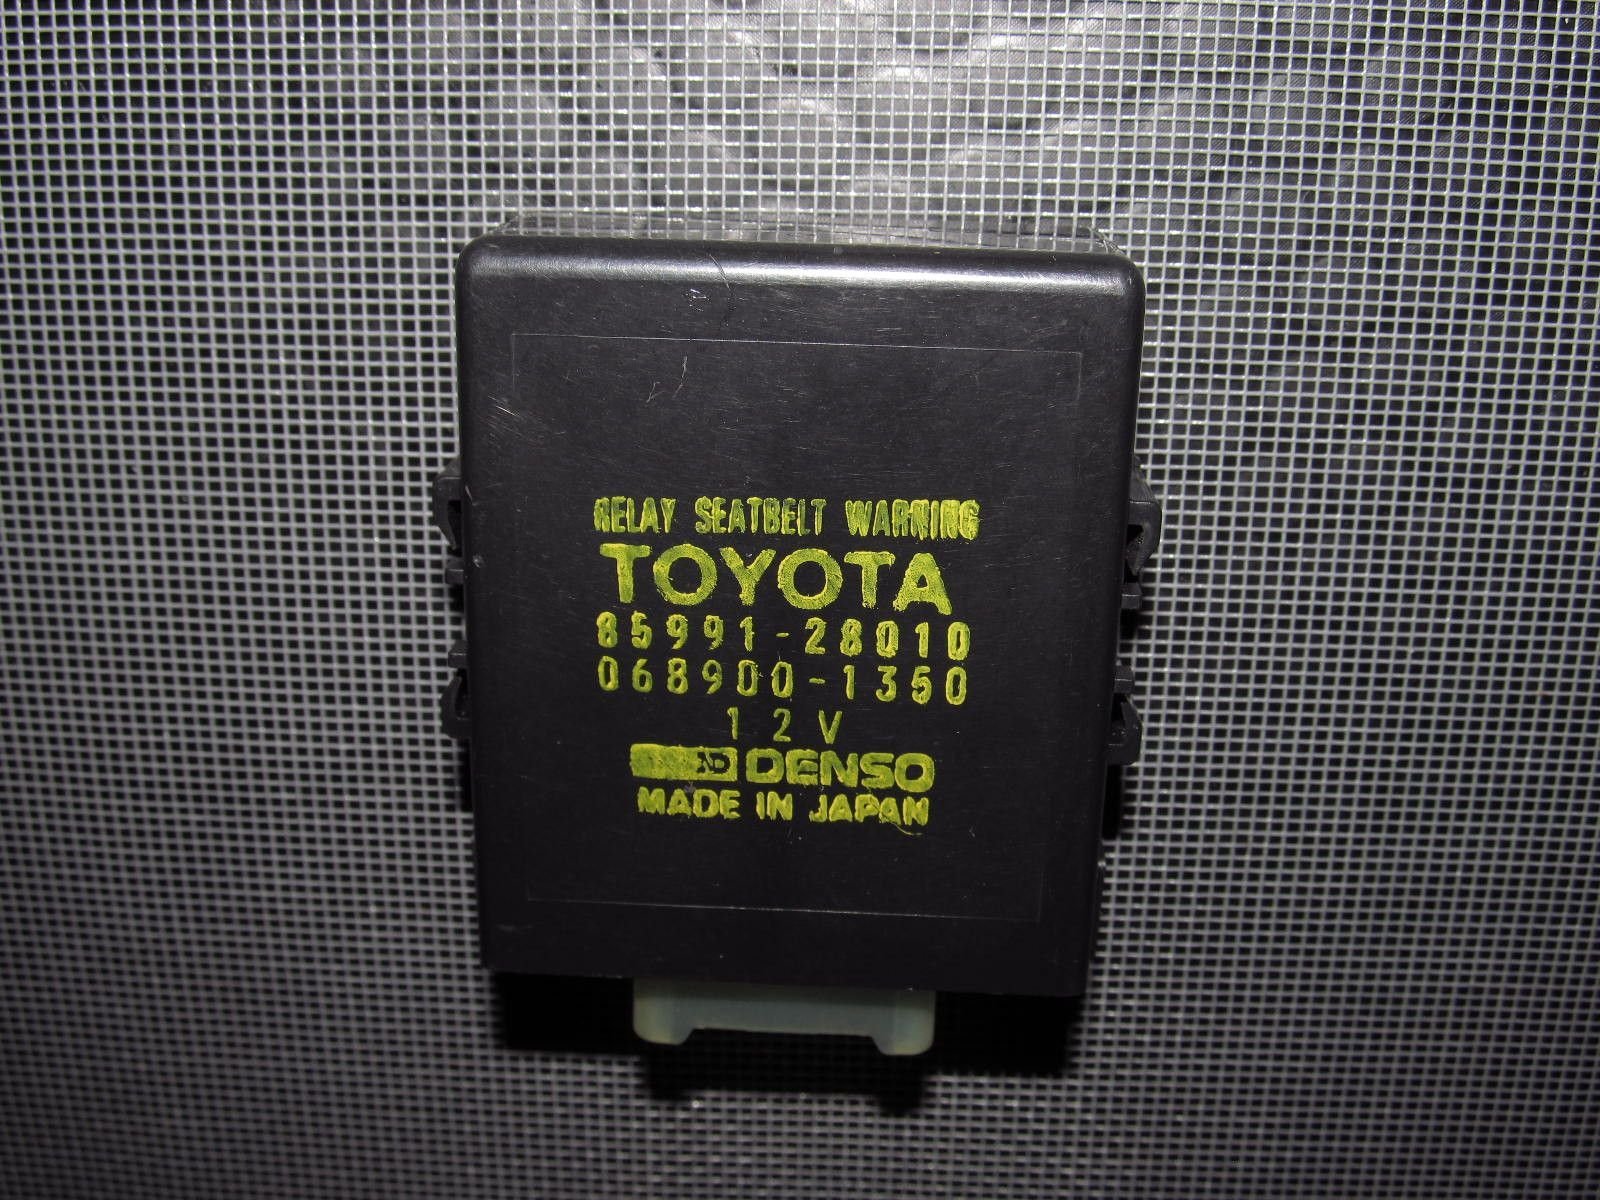 91-97 Toyota Previa Relay Seat Belt Warning Unit Module 85991-28010 Toyota  Previa